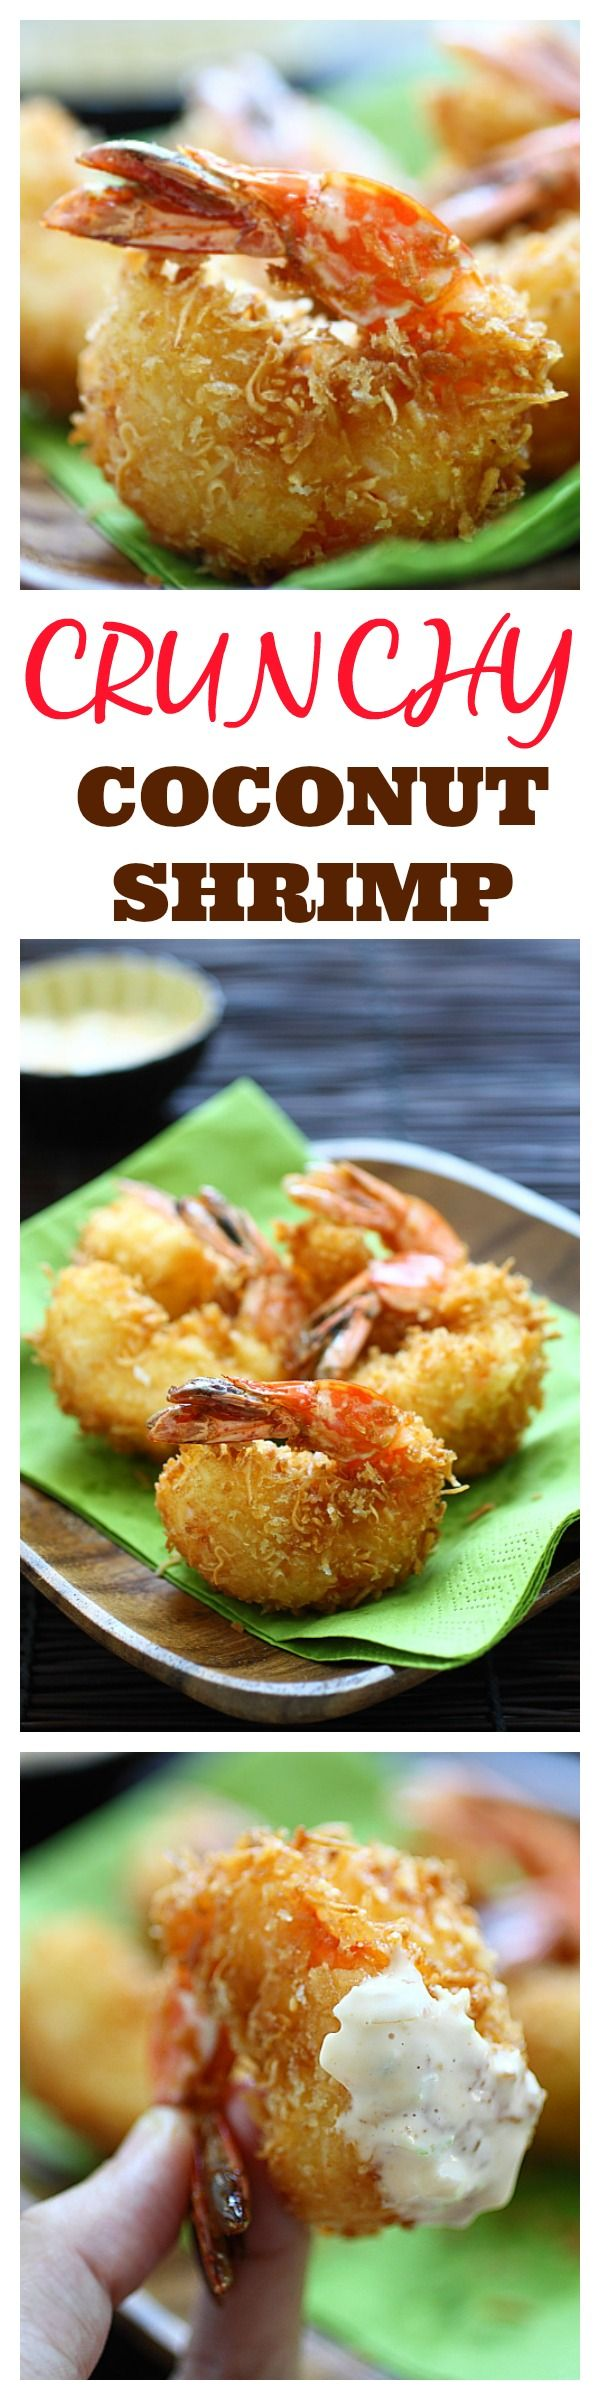 Crunchy Coconut Shrimp ~ The best coconut shrimp recipe ever with two secret ingredients, served with creamy tartar sauce... Super YUM